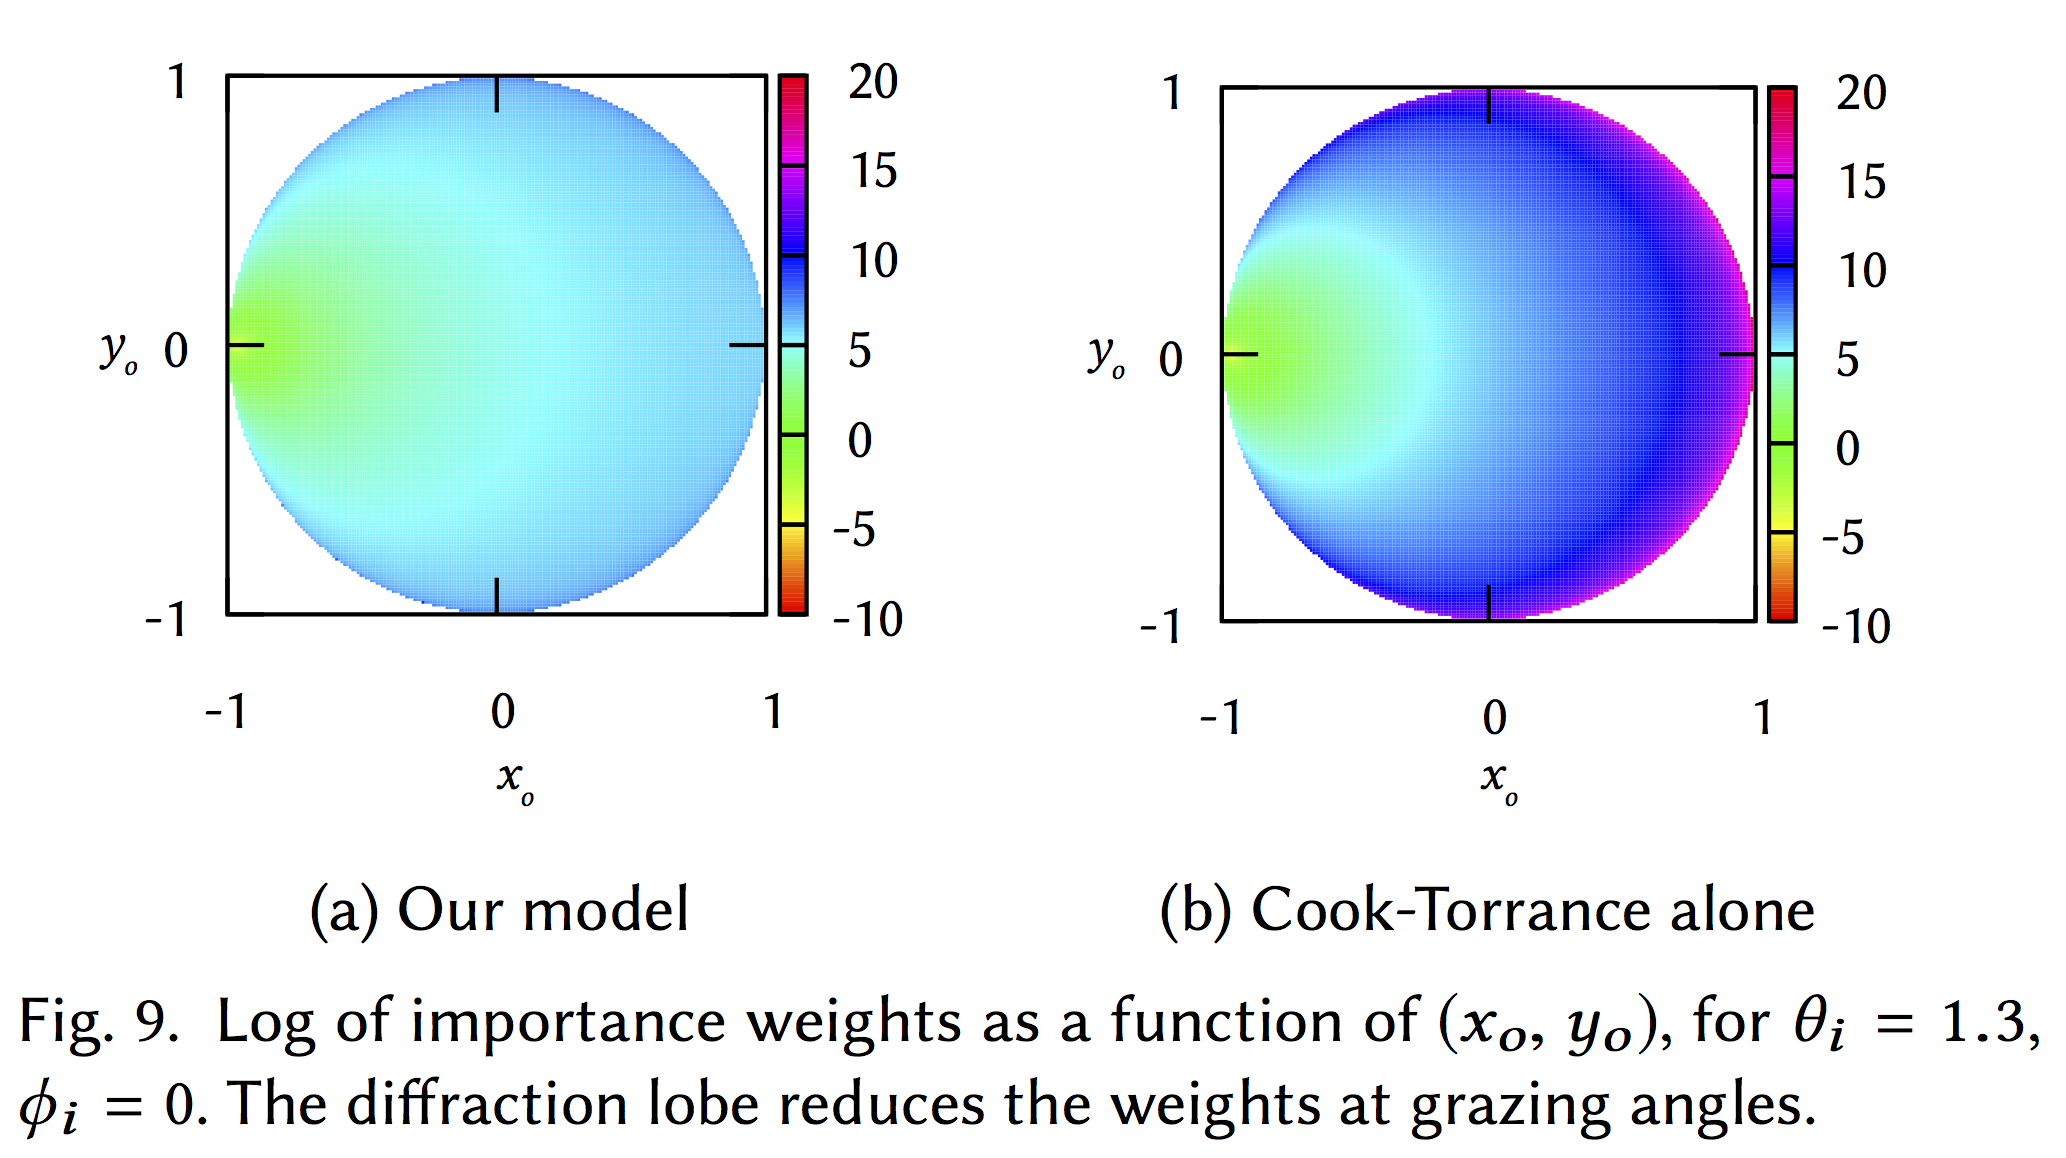 Inria - A Two-Scale Microfacet Reflectance Model Combining